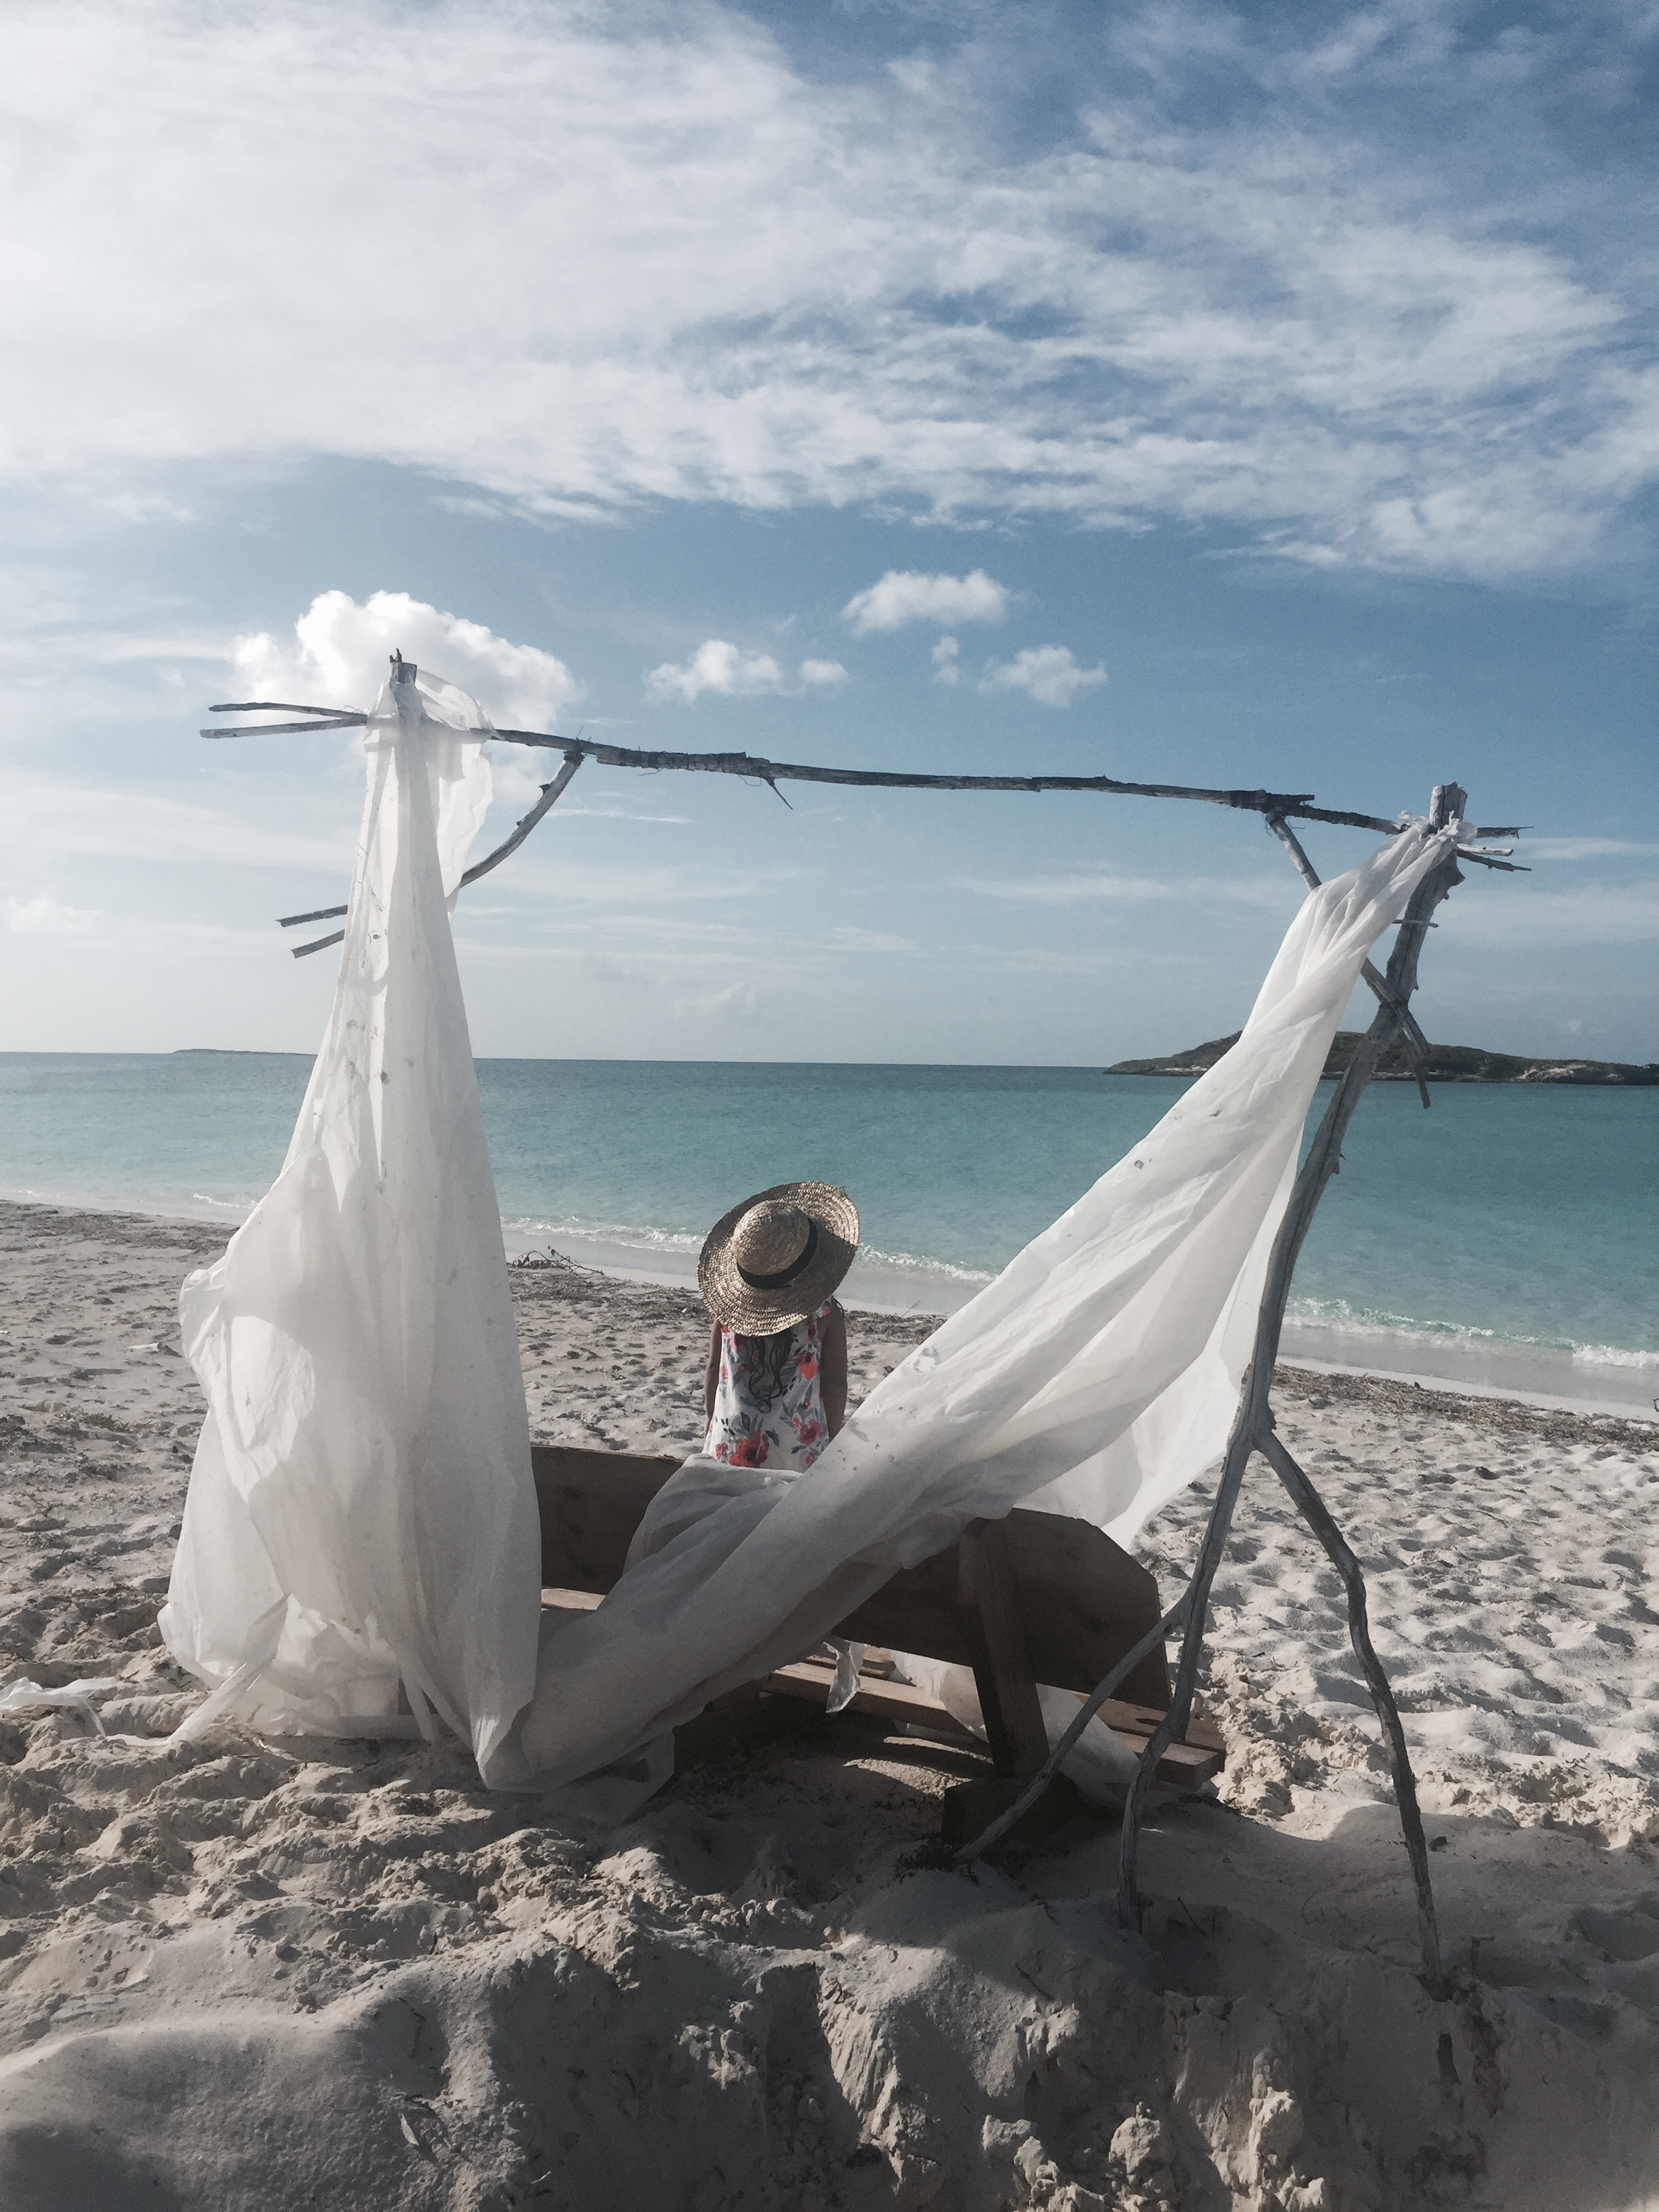 TROPIC OF CANCER BEACH - Ok, so not my favourite since it was almost an hour drive for what I think was almost the same beach right across our villas, and it had hardly any kind of shade! Yet this is known for being the prettiest beach in Exuma, consisting of